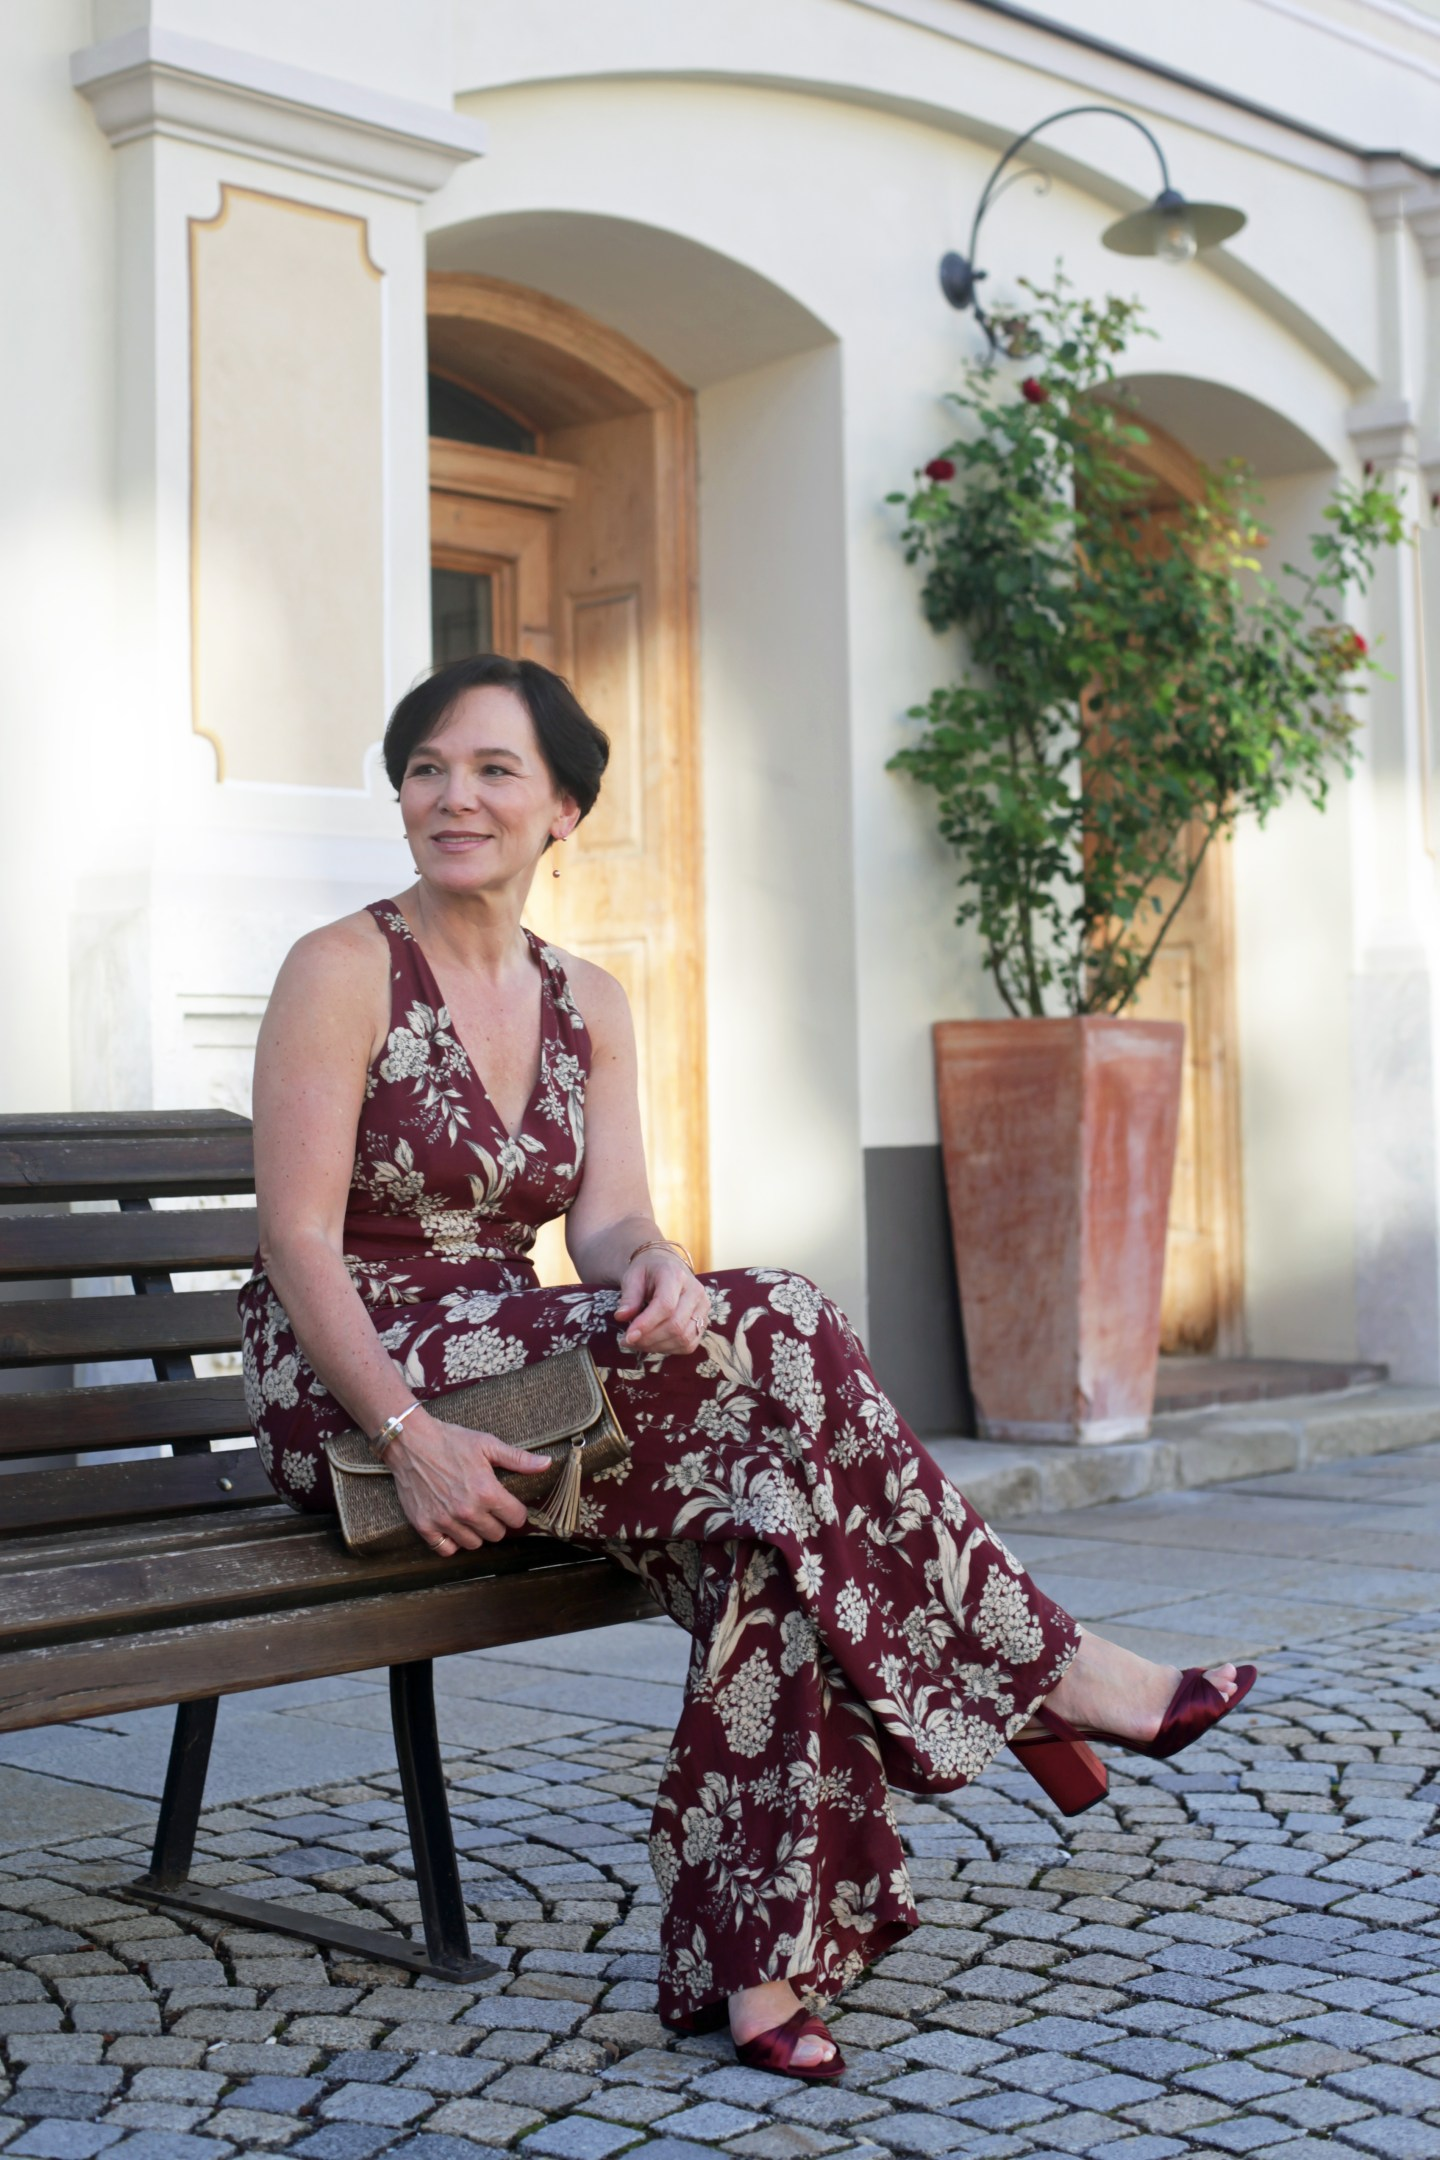 Overall Jumpsuit Beerentöne Bordeaux Party 50plus LadyofStyle